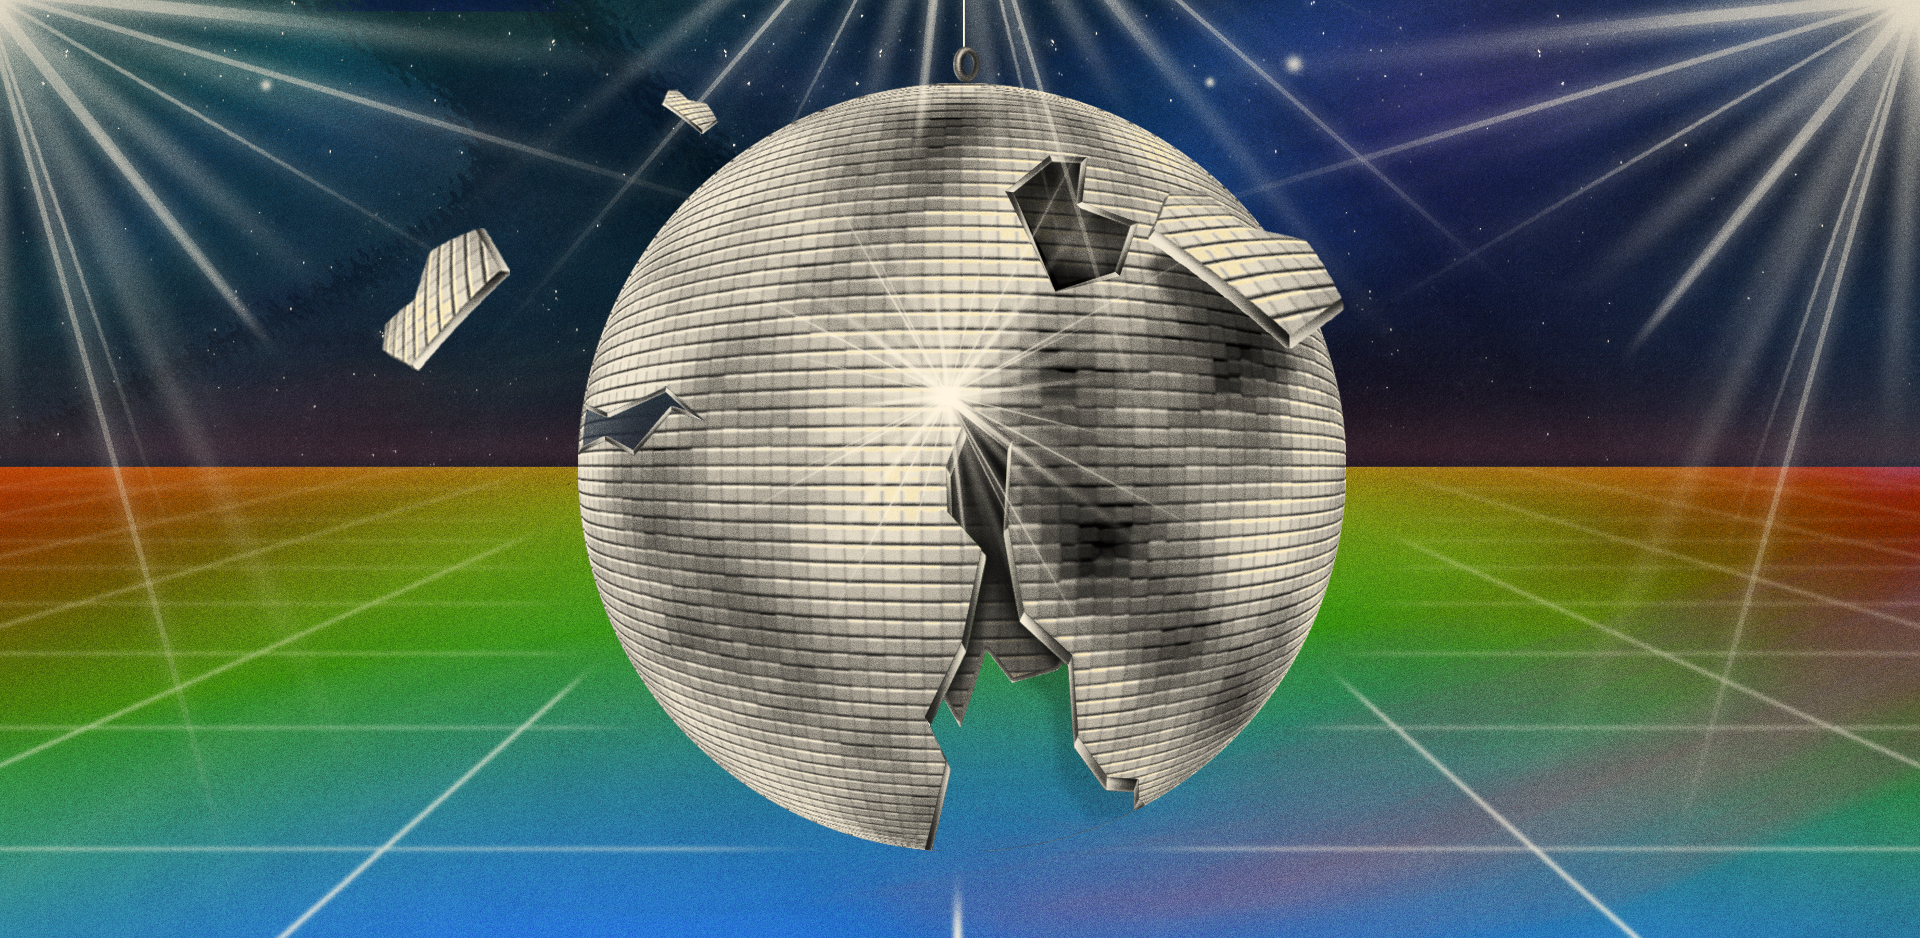 Illustration of a shattered disco ball on a dance floor